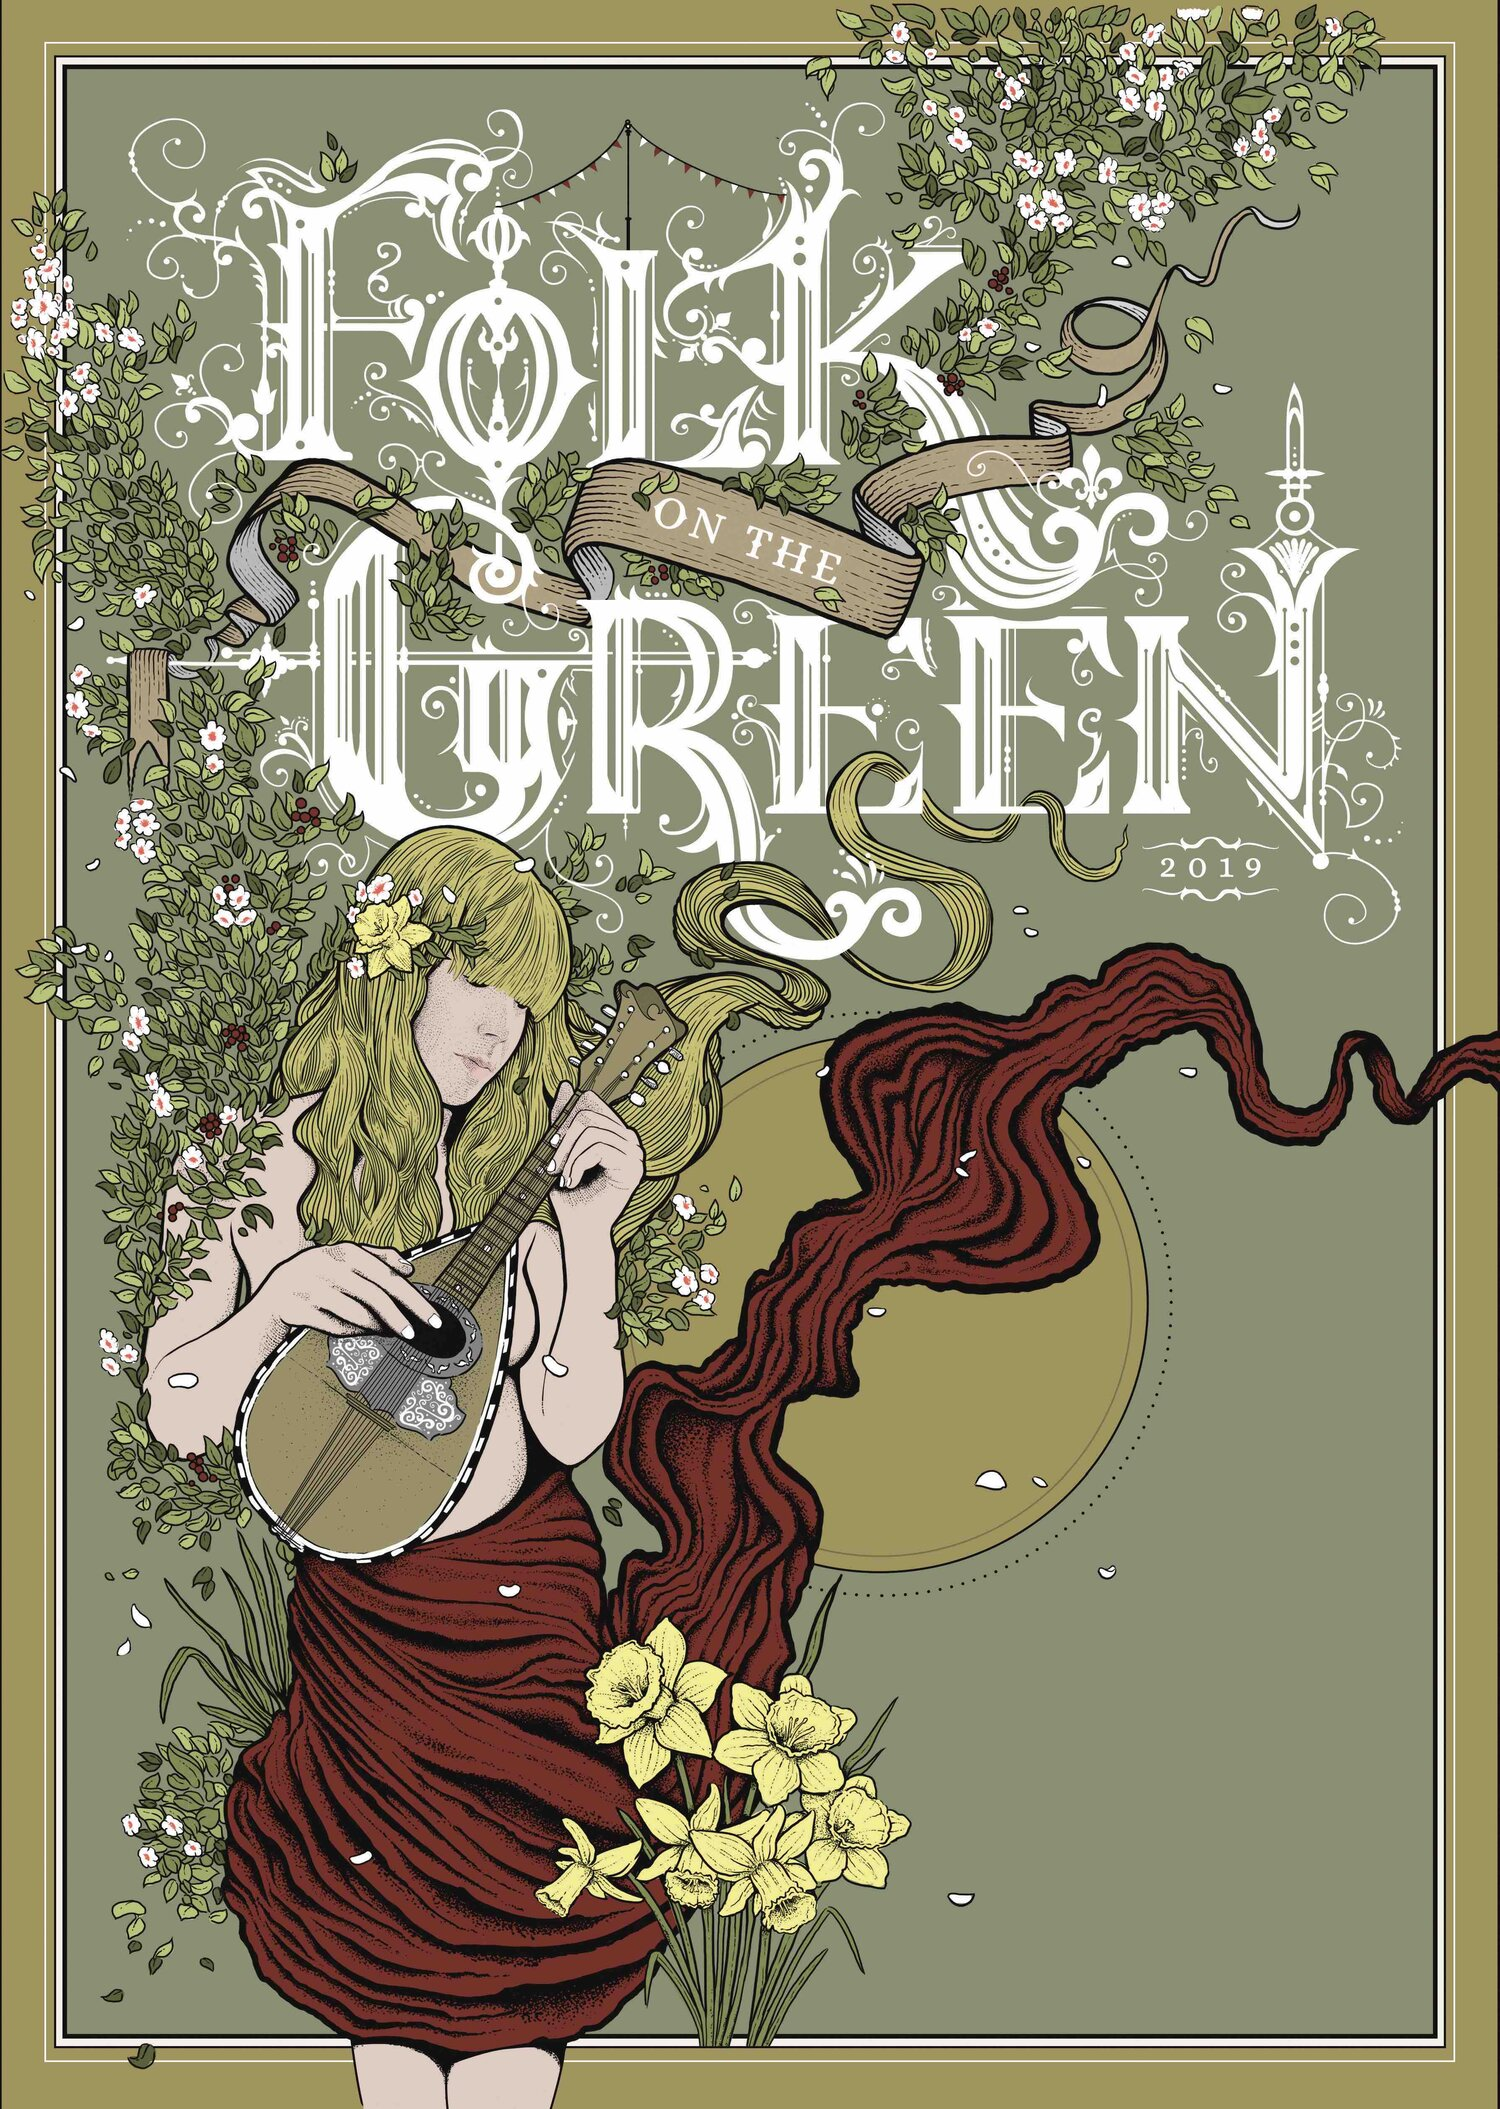 Folk on the green poster illustration